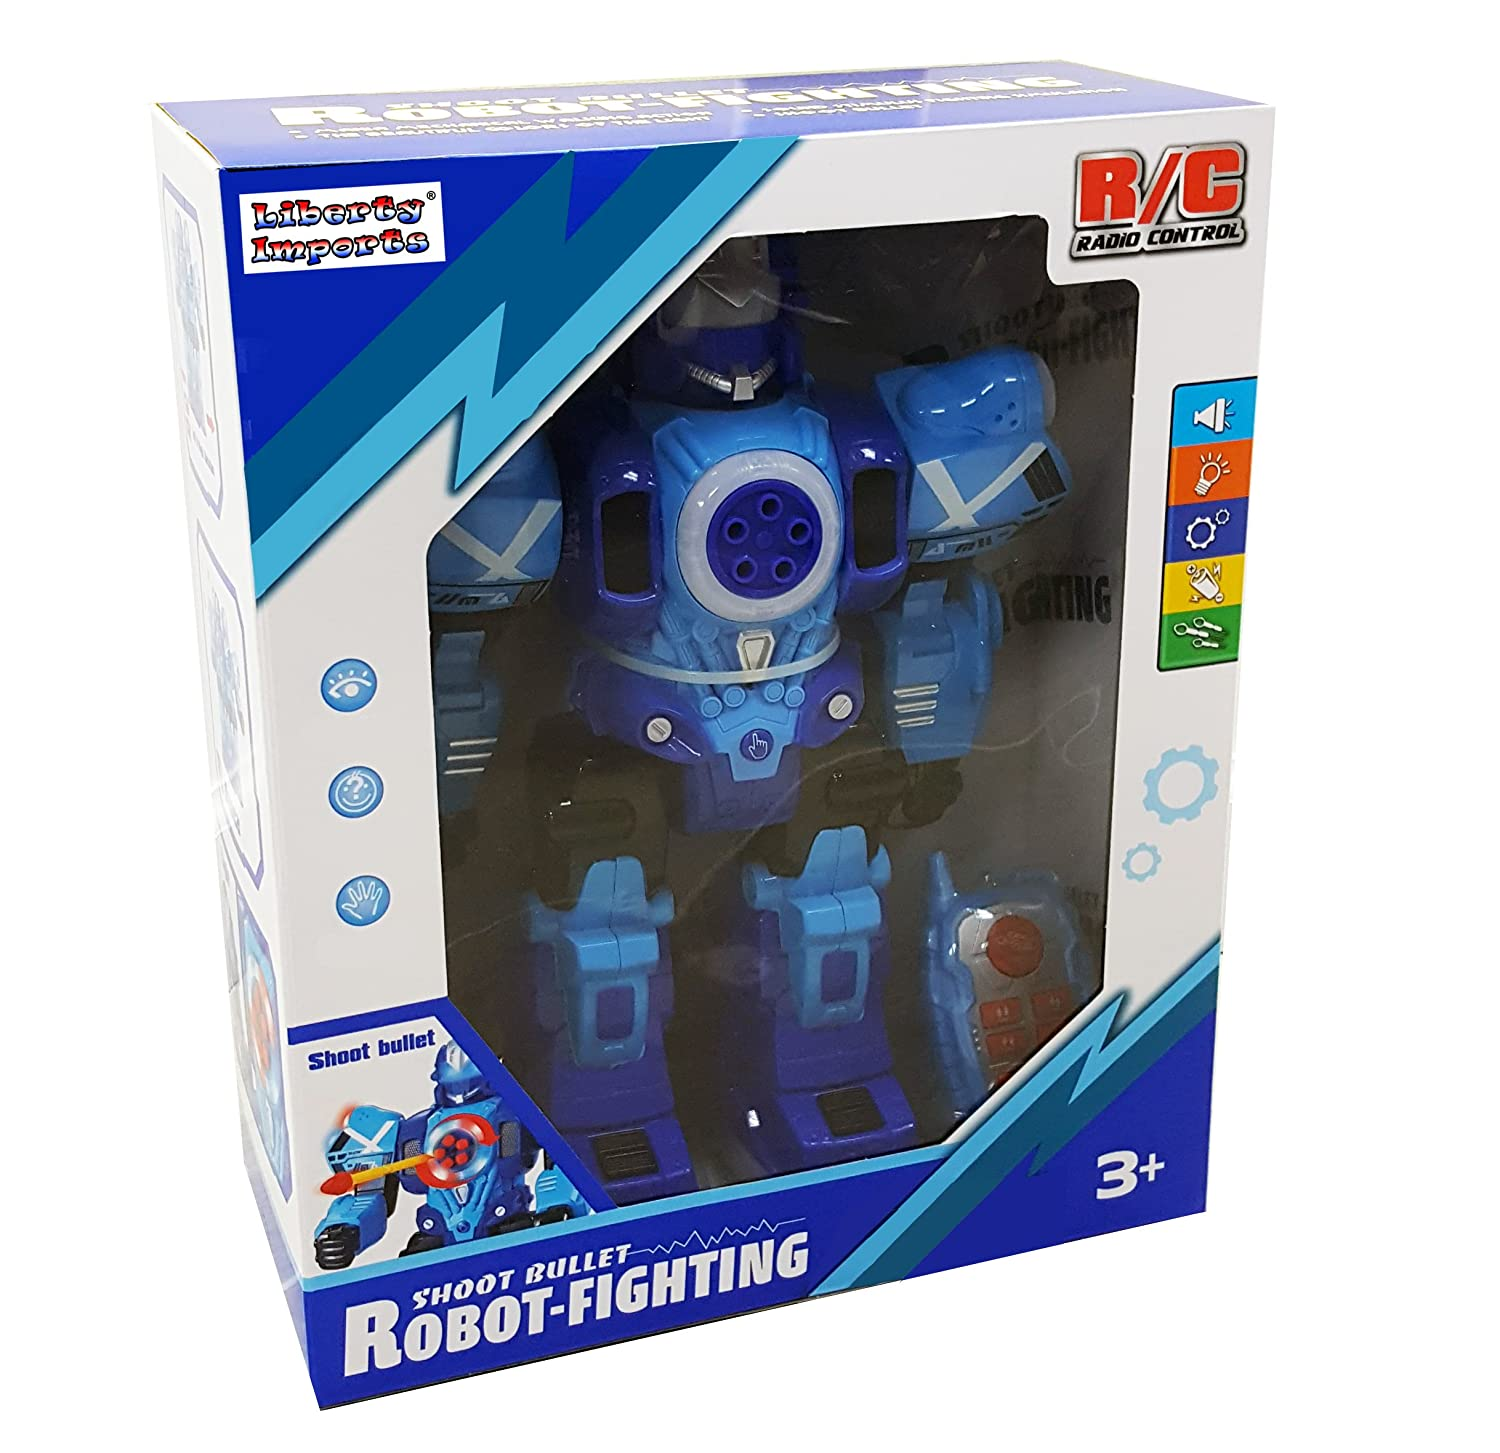 RC Robot Shoots Darts Talks Liberty Imports Large Remote Control Robot Toy for Kids Walks and Dances 10 Functions